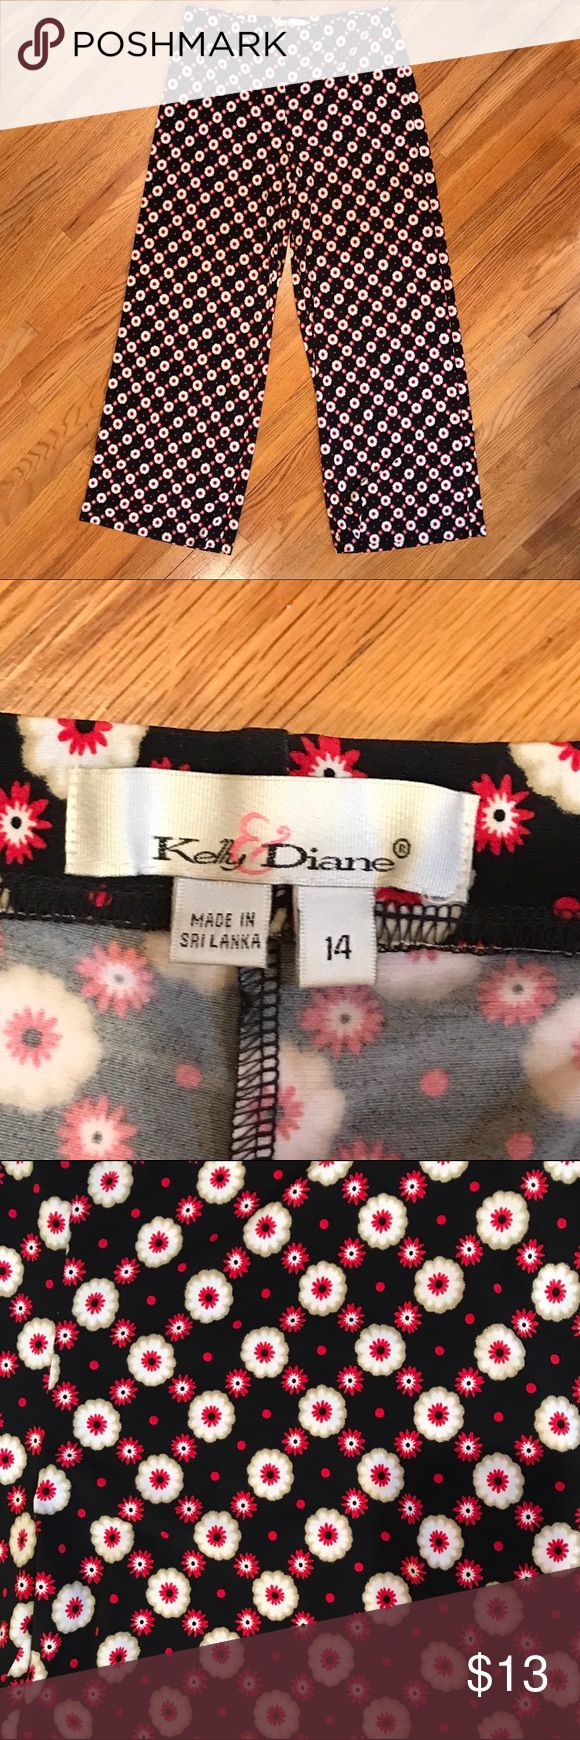 Kelly & Diane Wide Leg Palazzo Pants - Sz 14 Red& Black wide leg palazzo pants.  Worn once - excellent condition! 95% Polyester, 5% Spandex - Hand washable. Kelly & Diane Pants Wide Leg